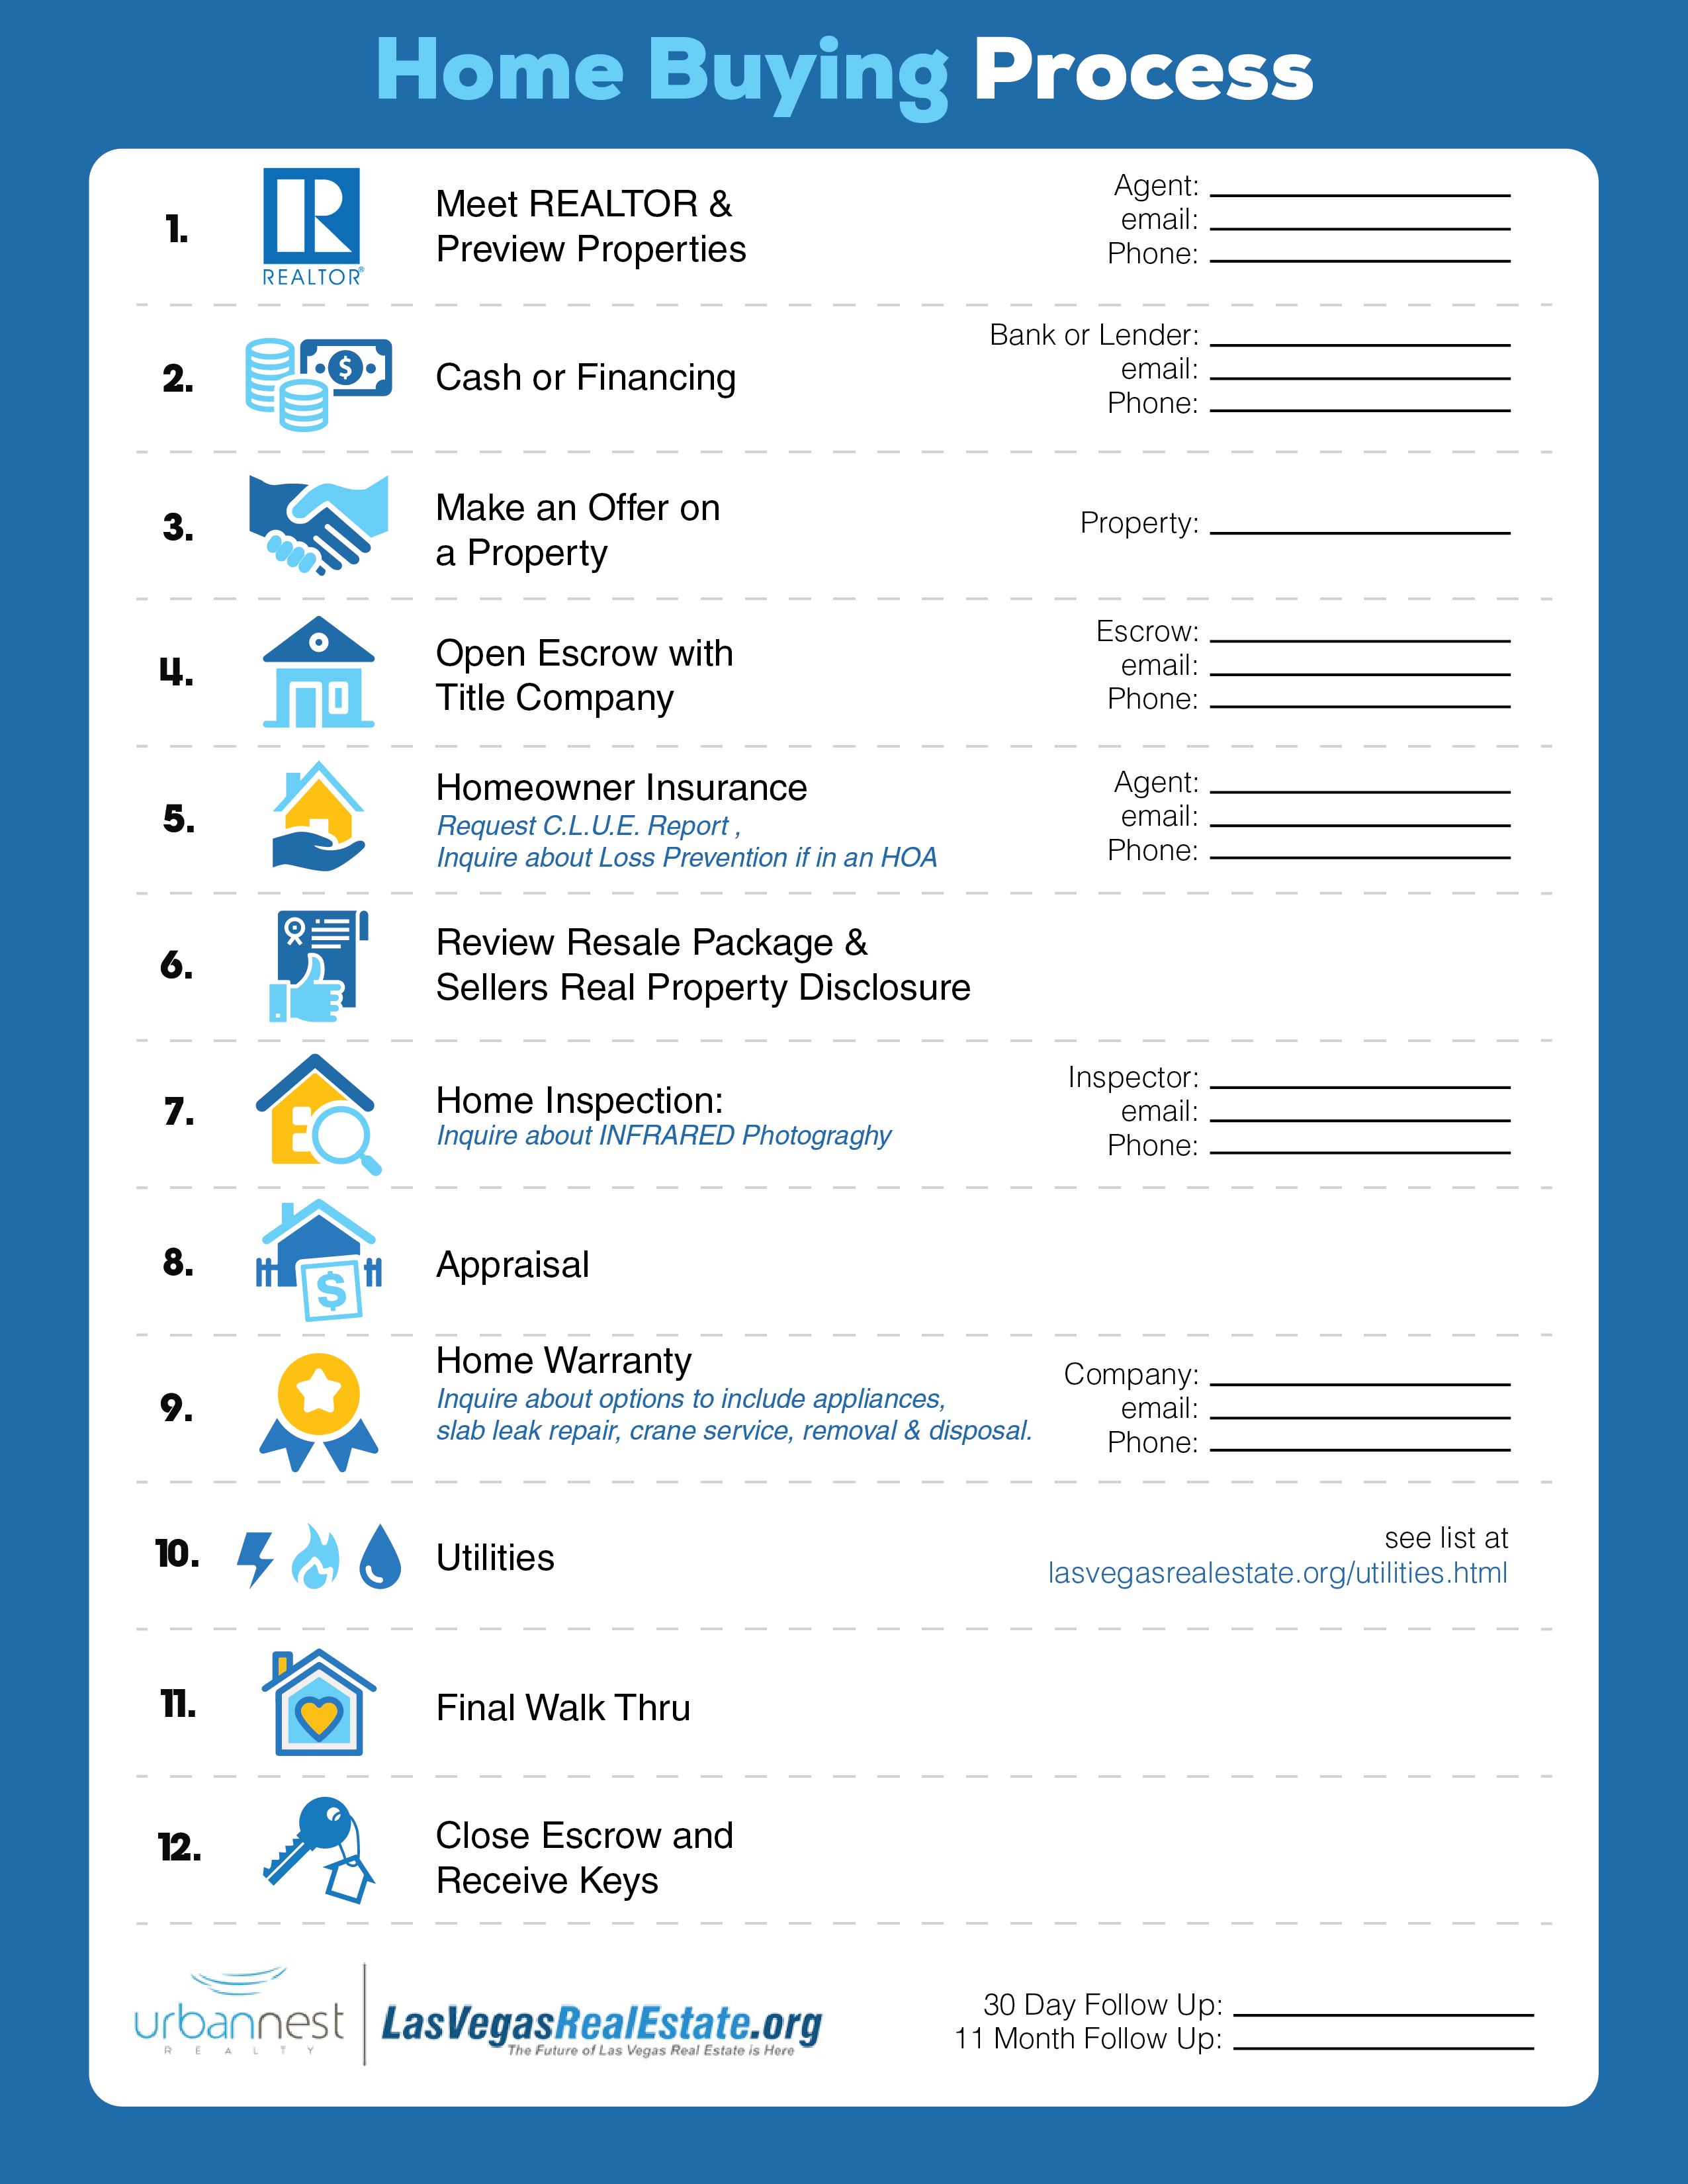 Home Buying Process Checklist